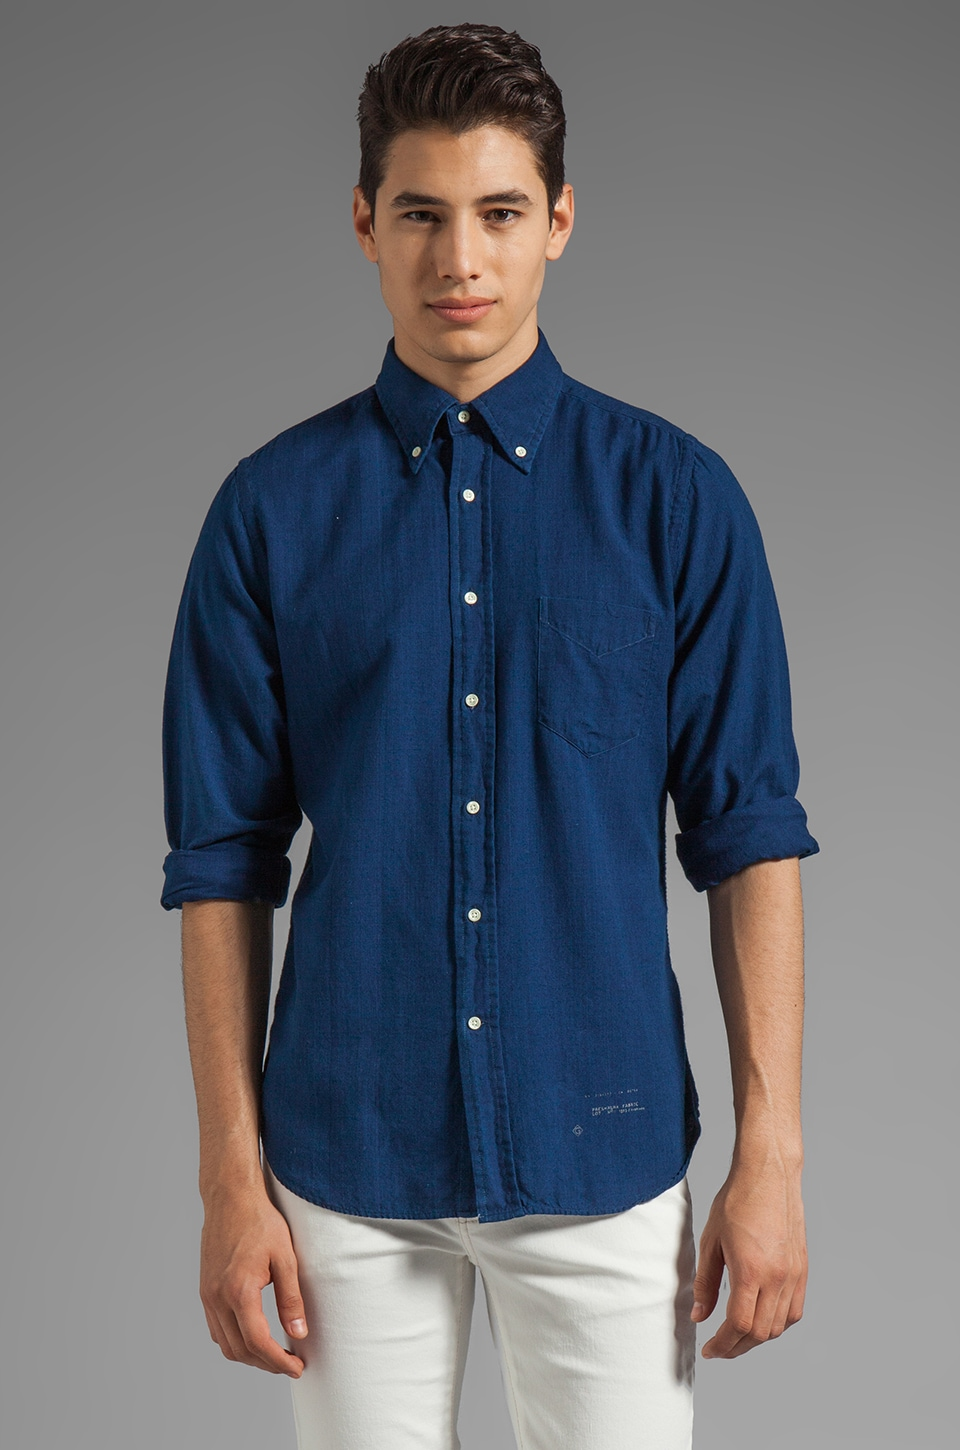 GANT Rugger Oxford HOBD in Indigo